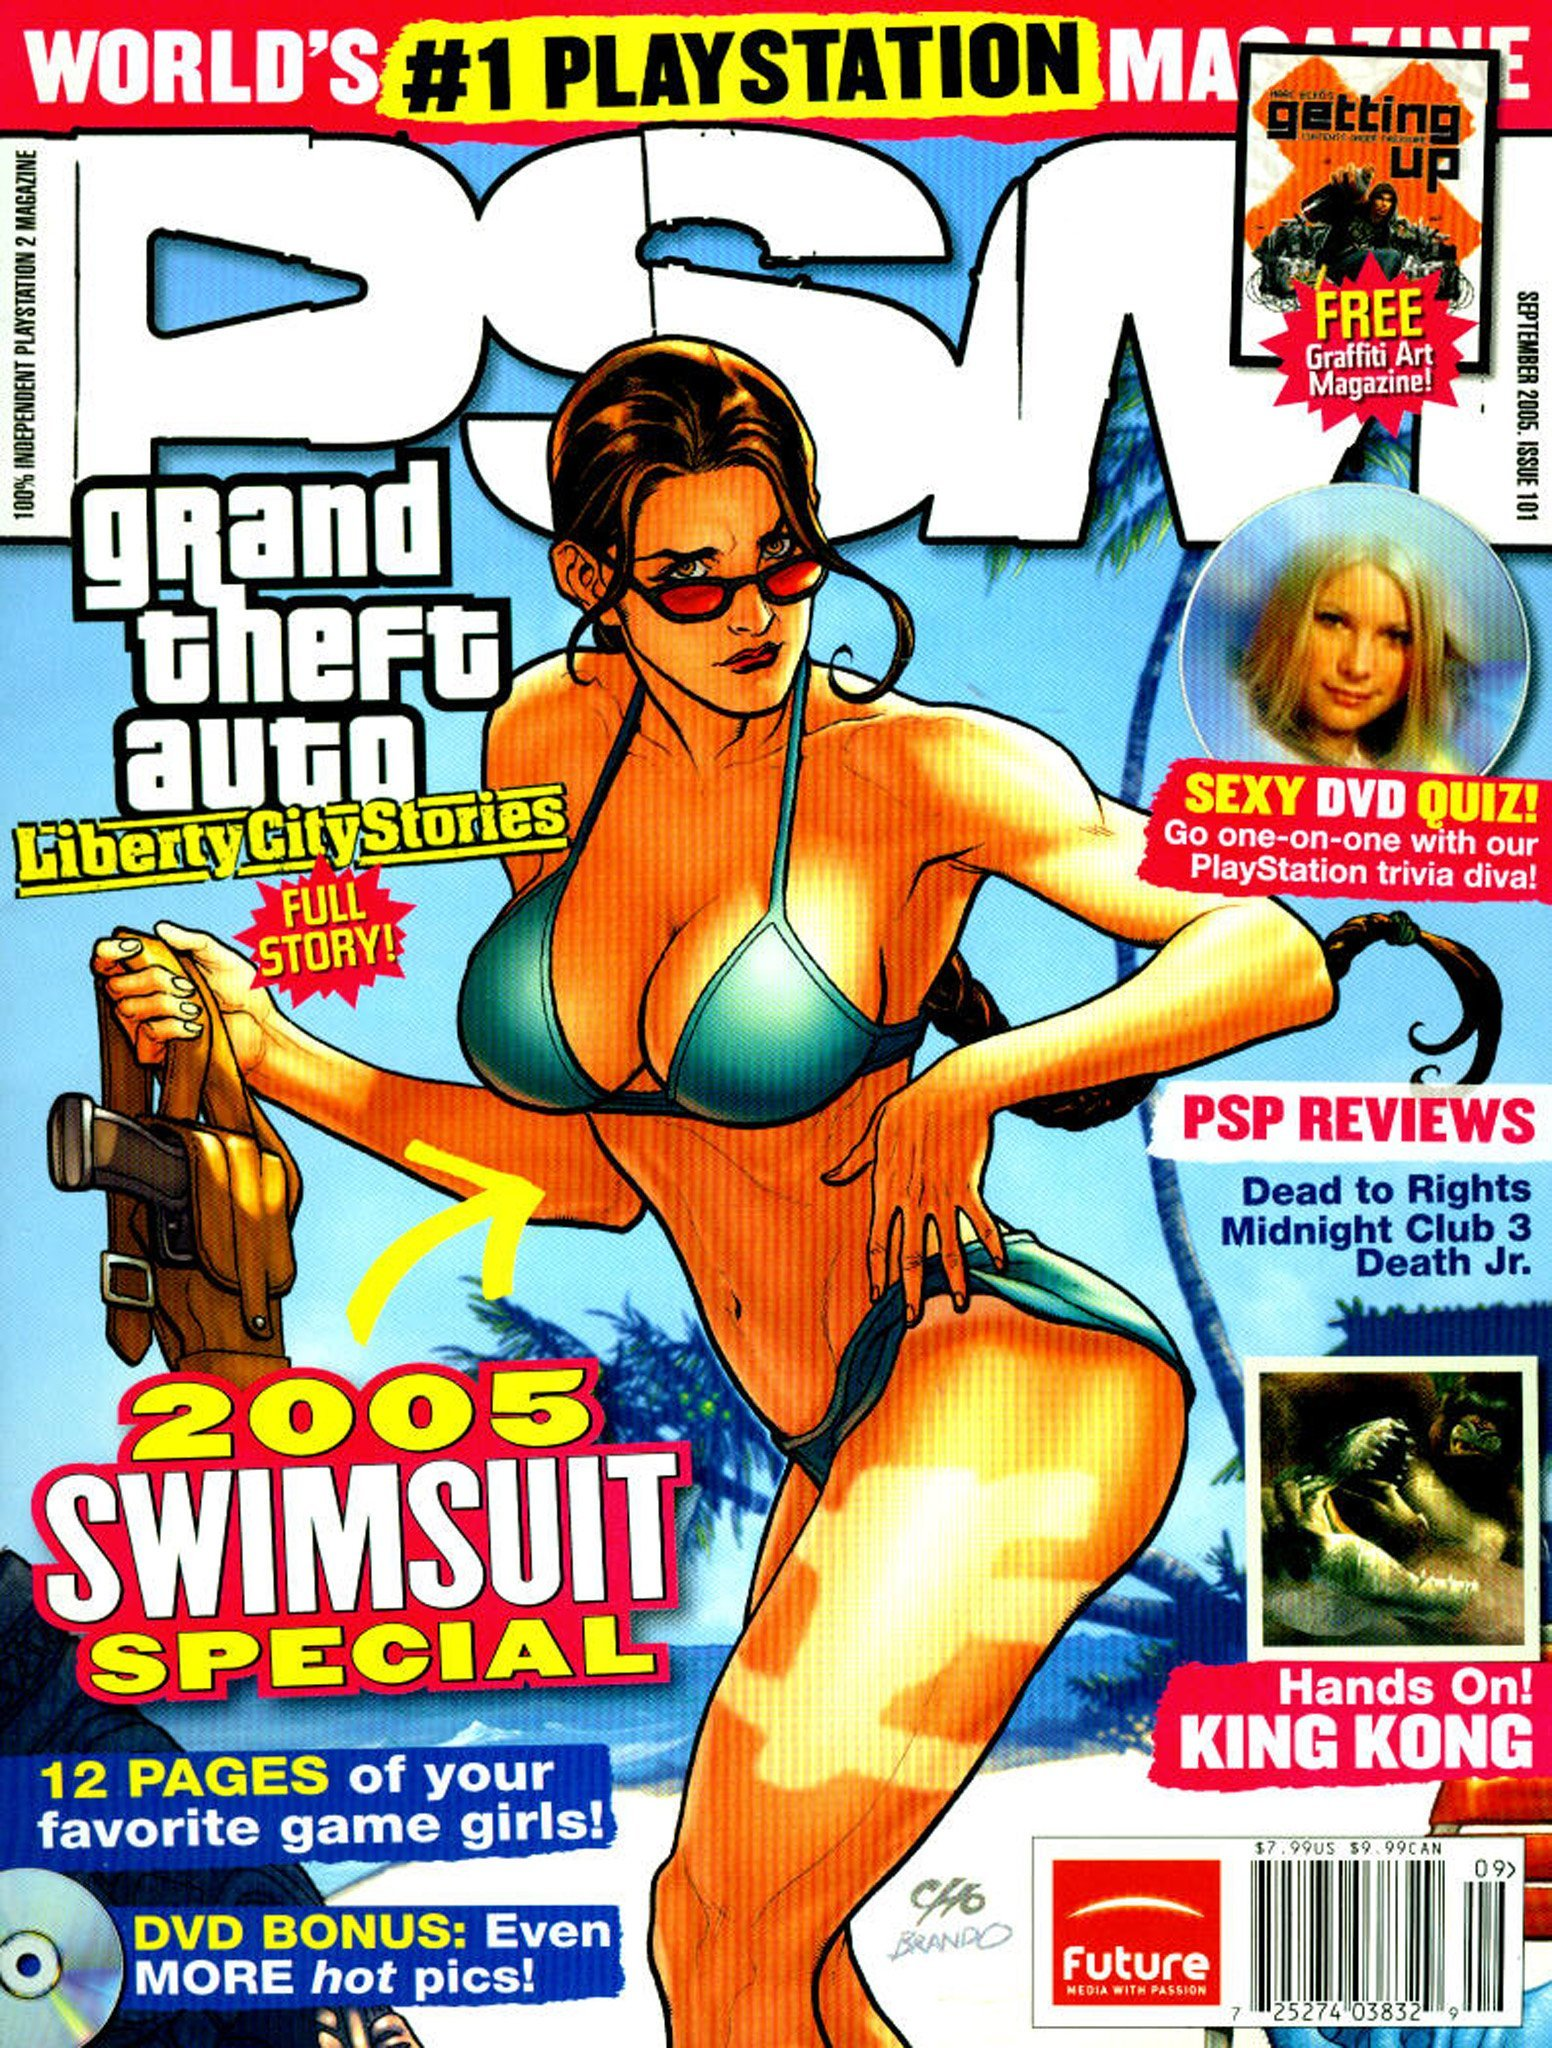 PSM issue 101 sept 2005 swimsuit cover